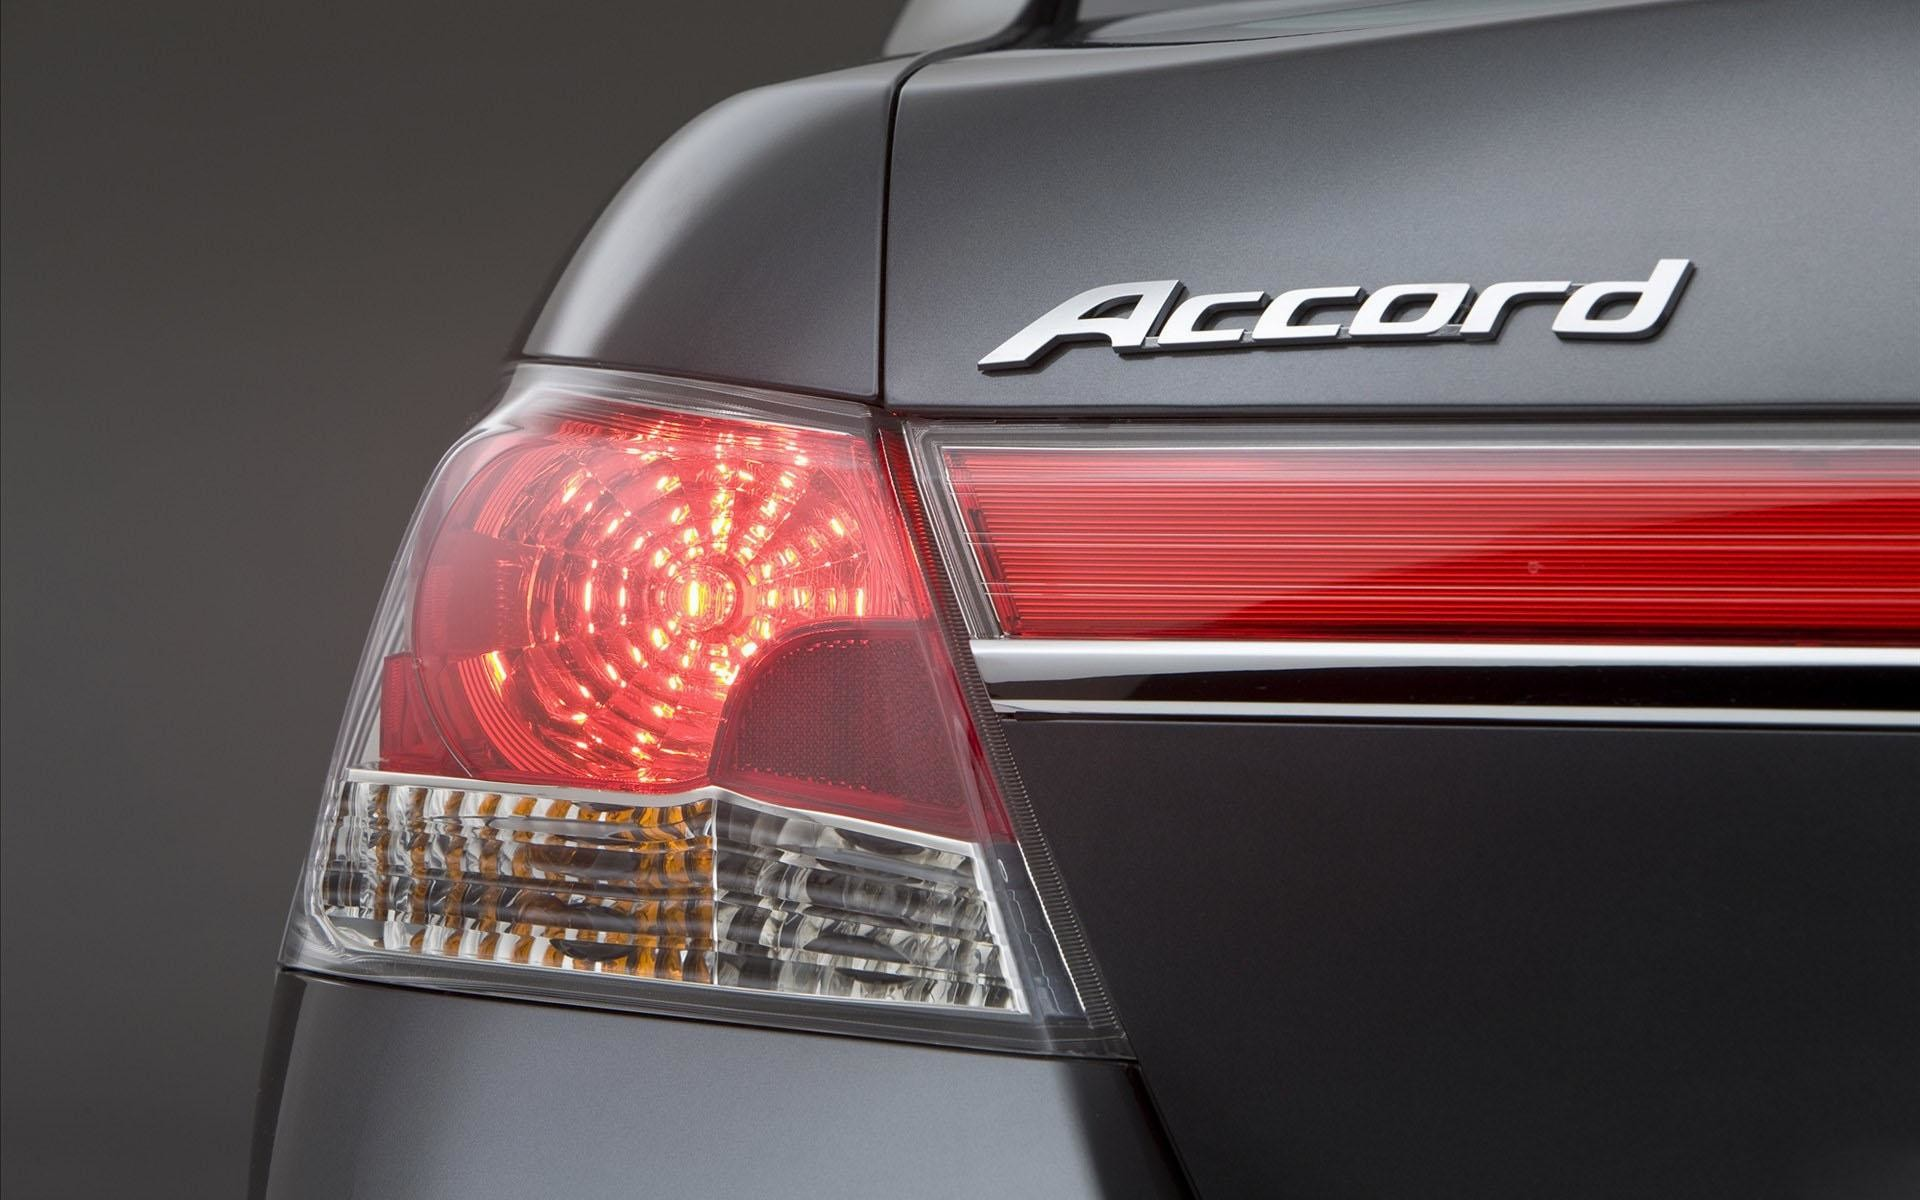 wallpaper.wiki-Honda-accord-emblem-wallpaper-hd-PIC-